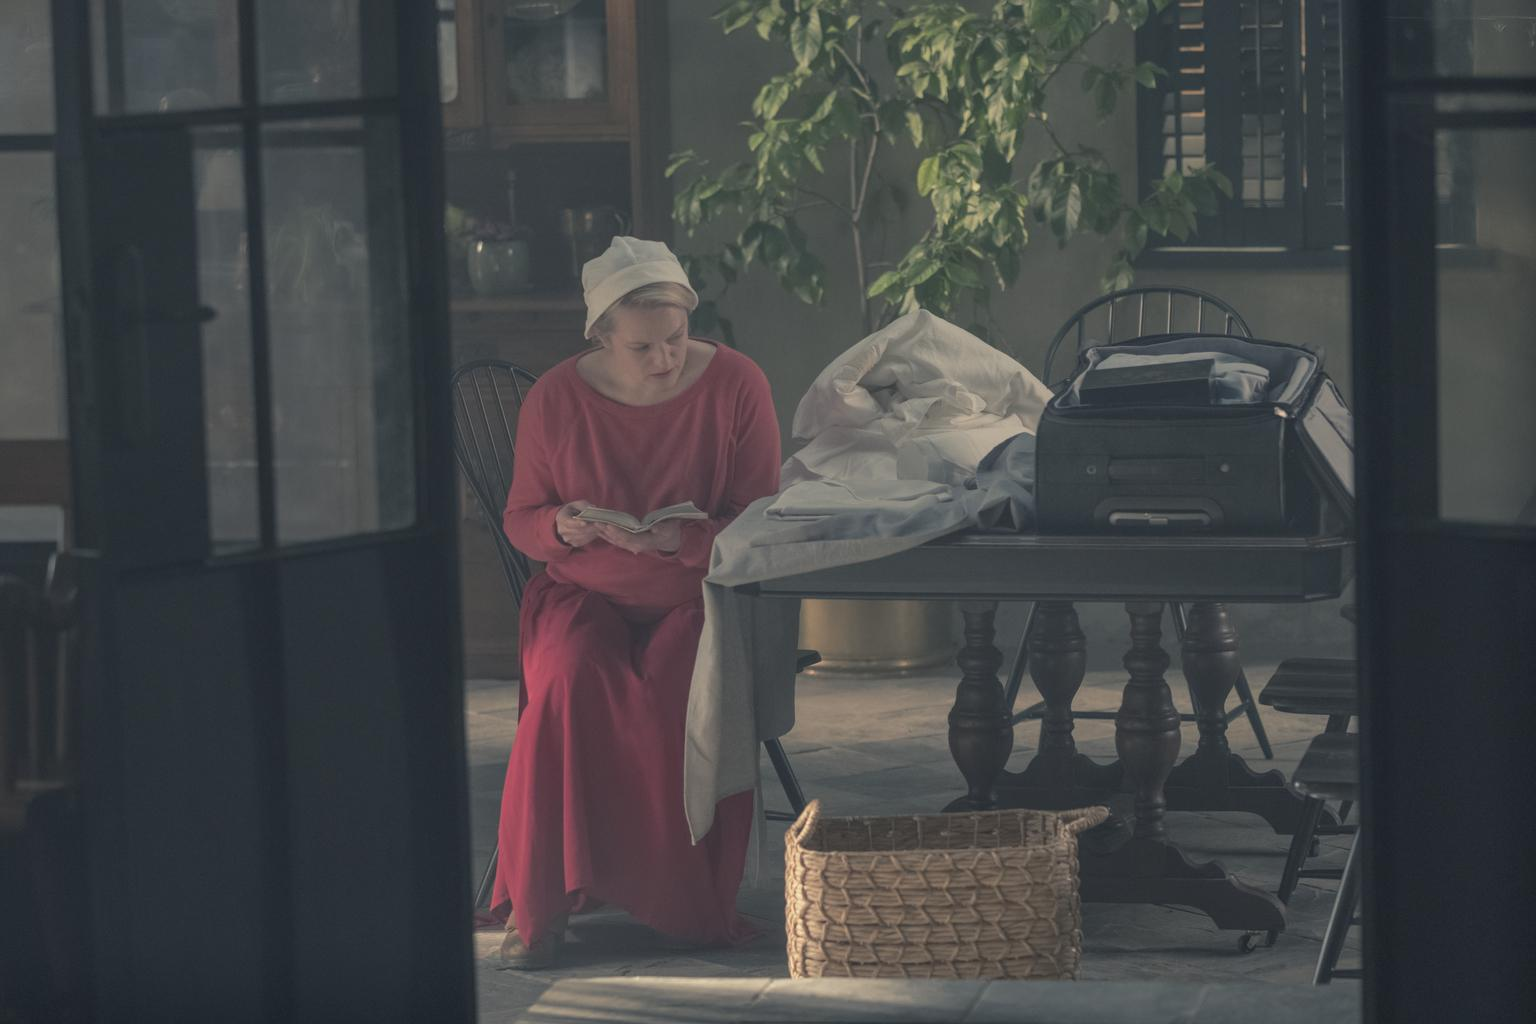 handmaid's tale season 3 - photo #44